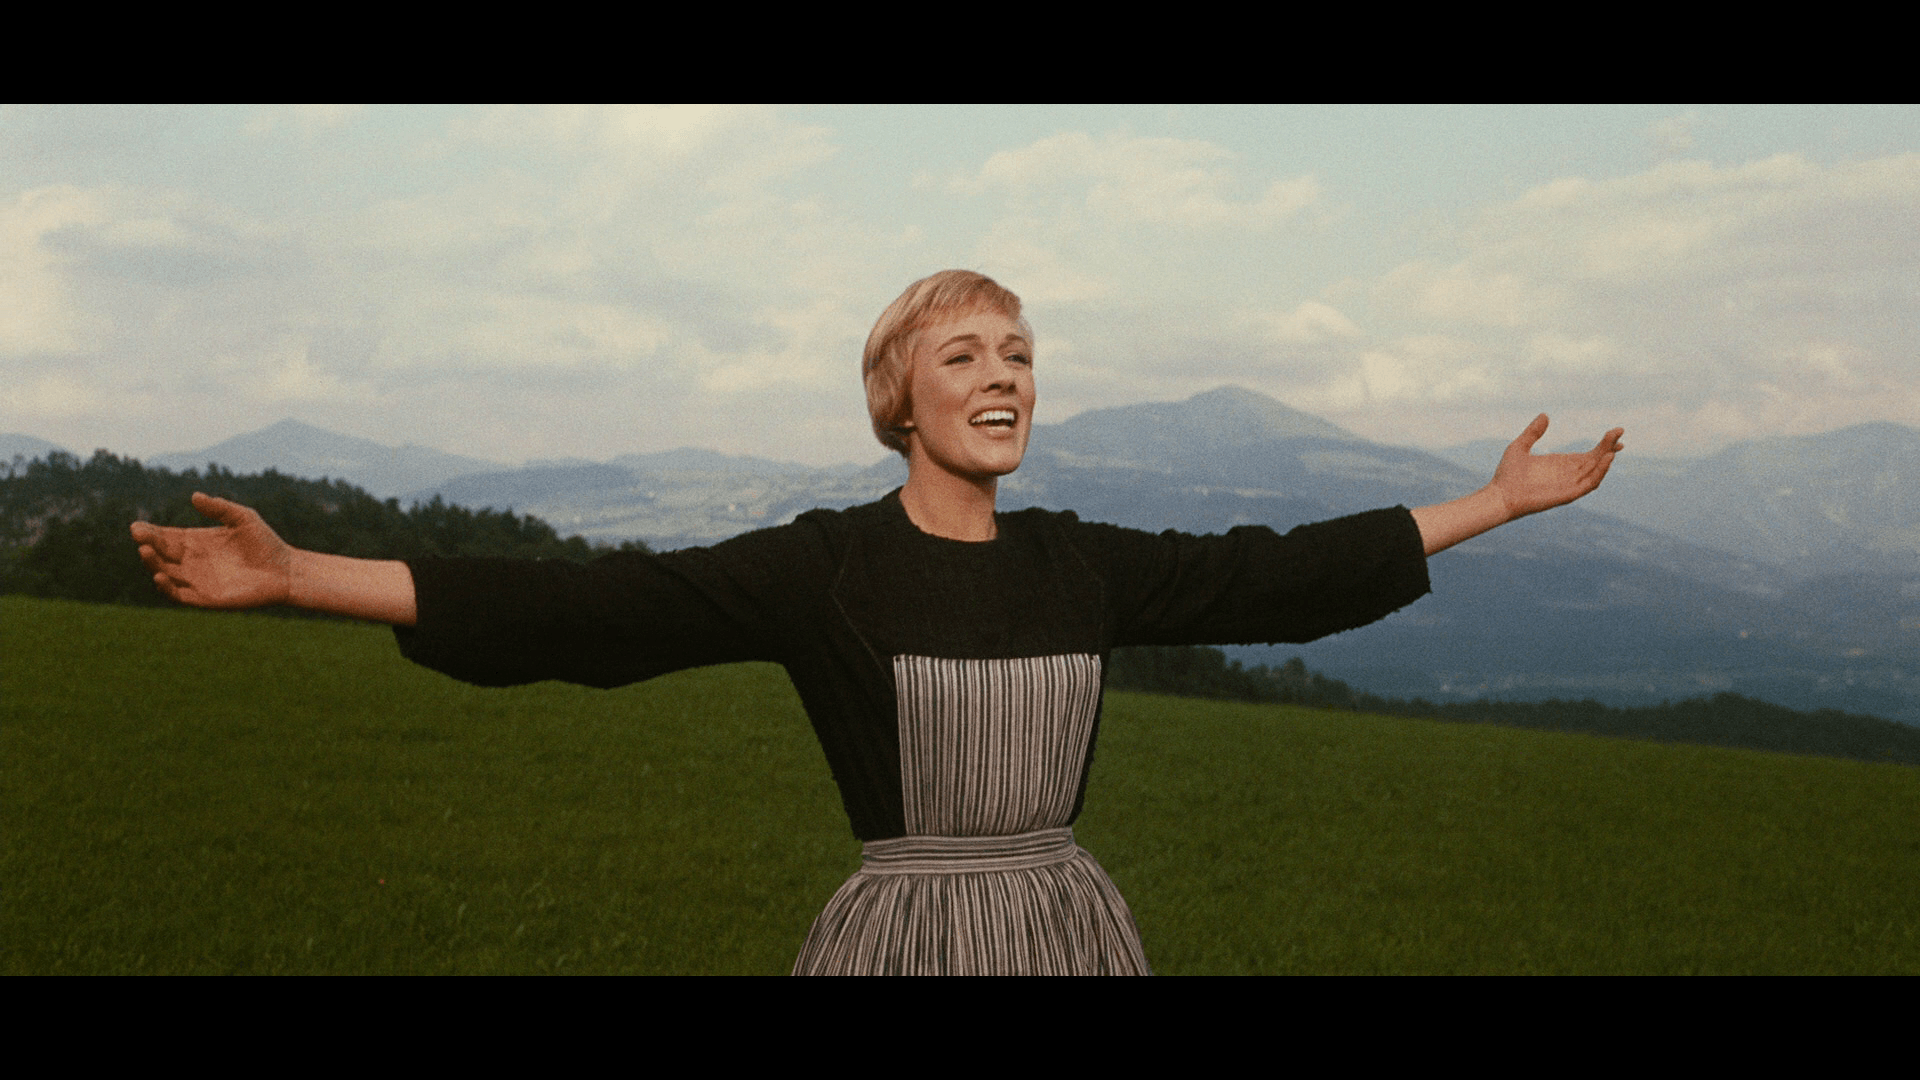 The Sound Of Music Wallpapers 20